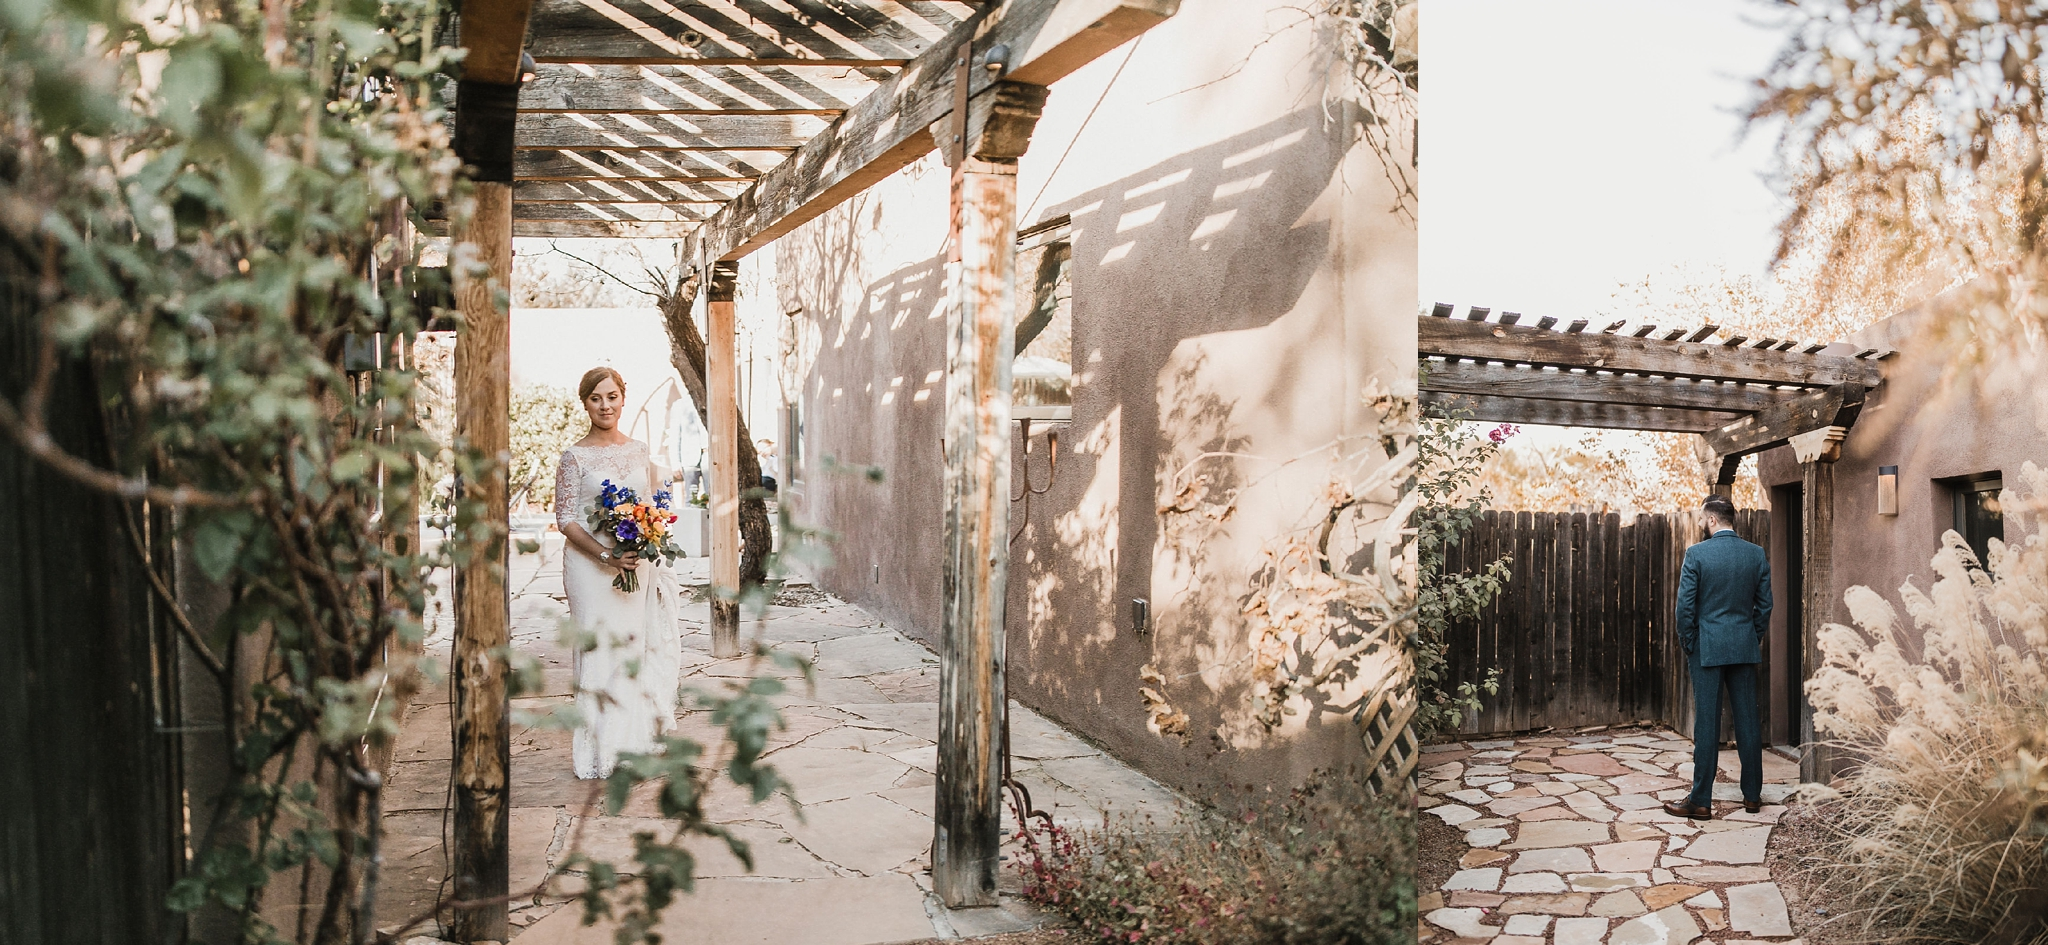 Alicia+lucia+photography+-+albuquerque+wedding+photographer+-+santa+fe+wedding+photography+-+new+mexico+wedding+photographer+-+albuquerque+wedding+-+sarabande+bed+breakfast+-+bed+and+breakfast+wedding_0020.jpg